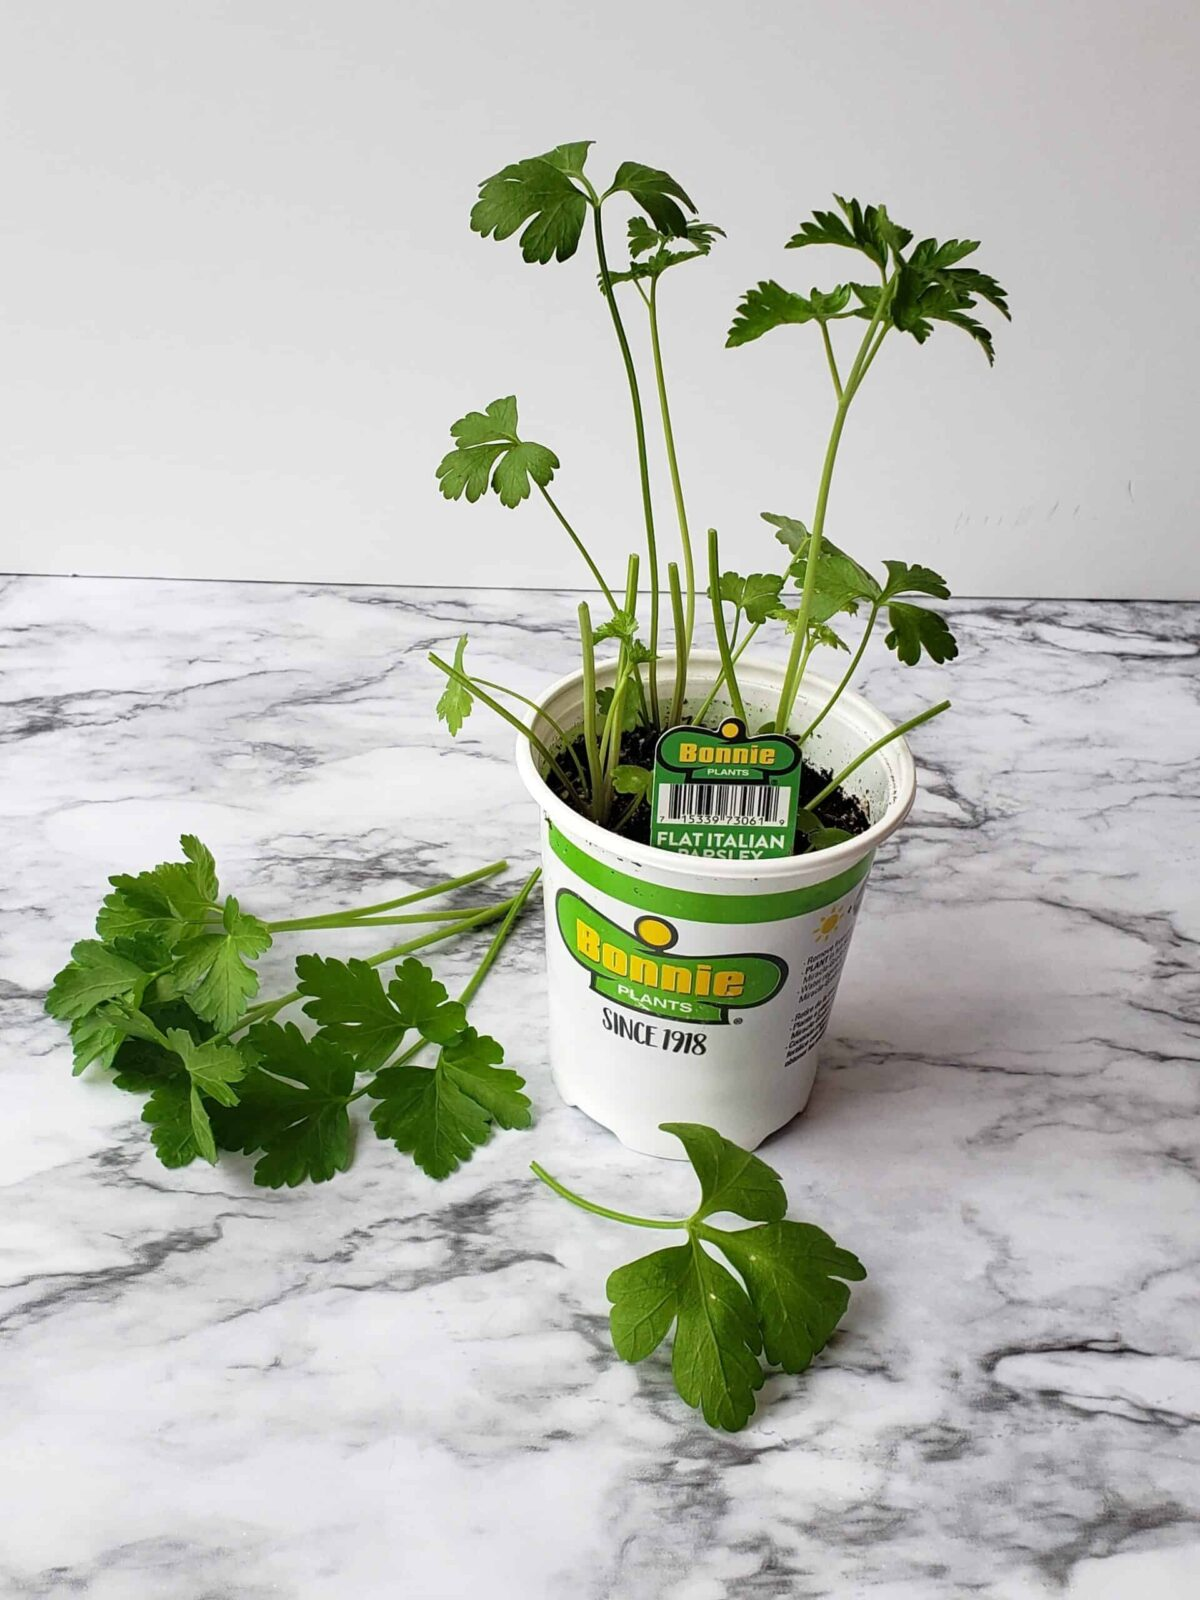 Cut parsley stems from potted plant laid on marble surface